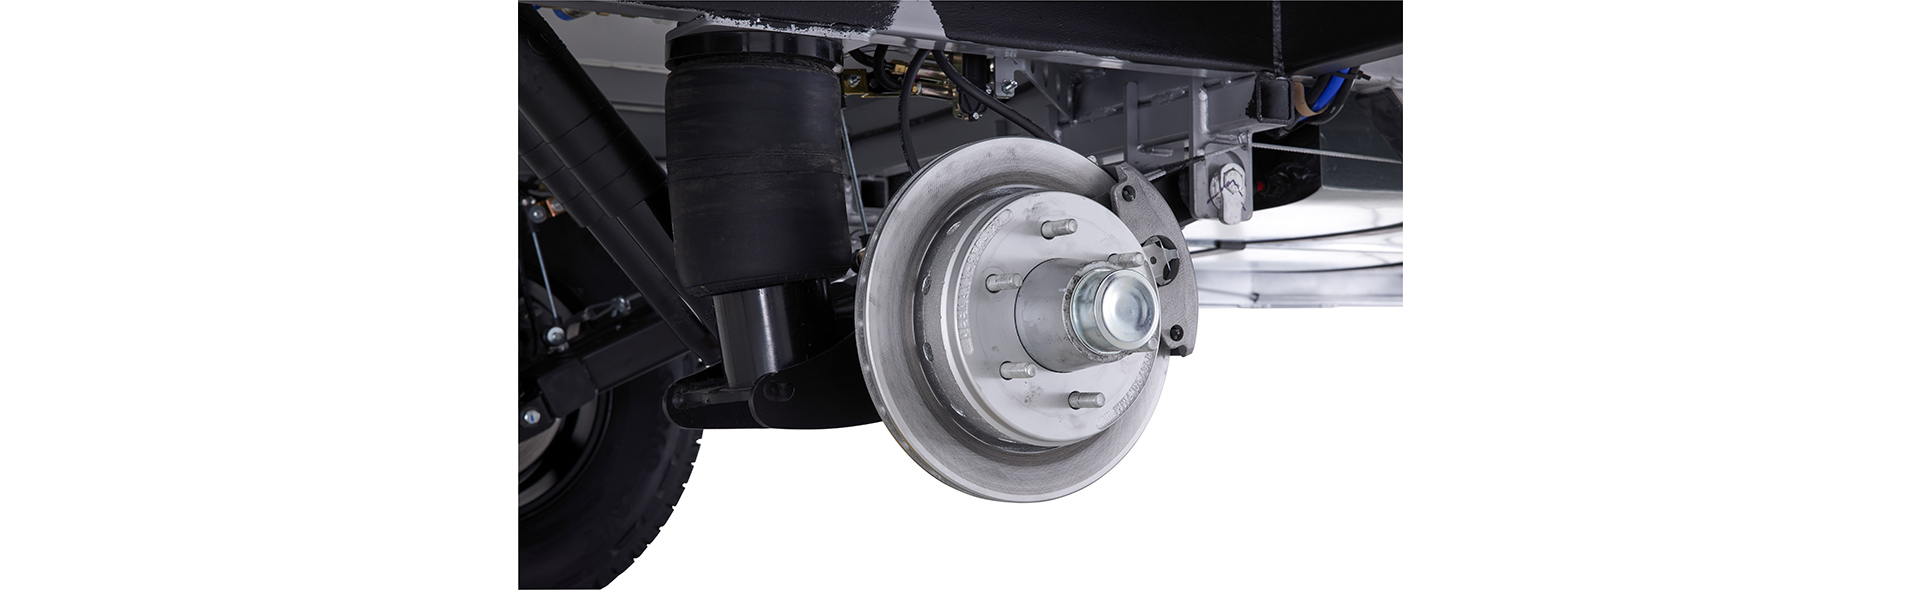 The Hurricanes' 12'' disc brakes give you lots of stopping power.